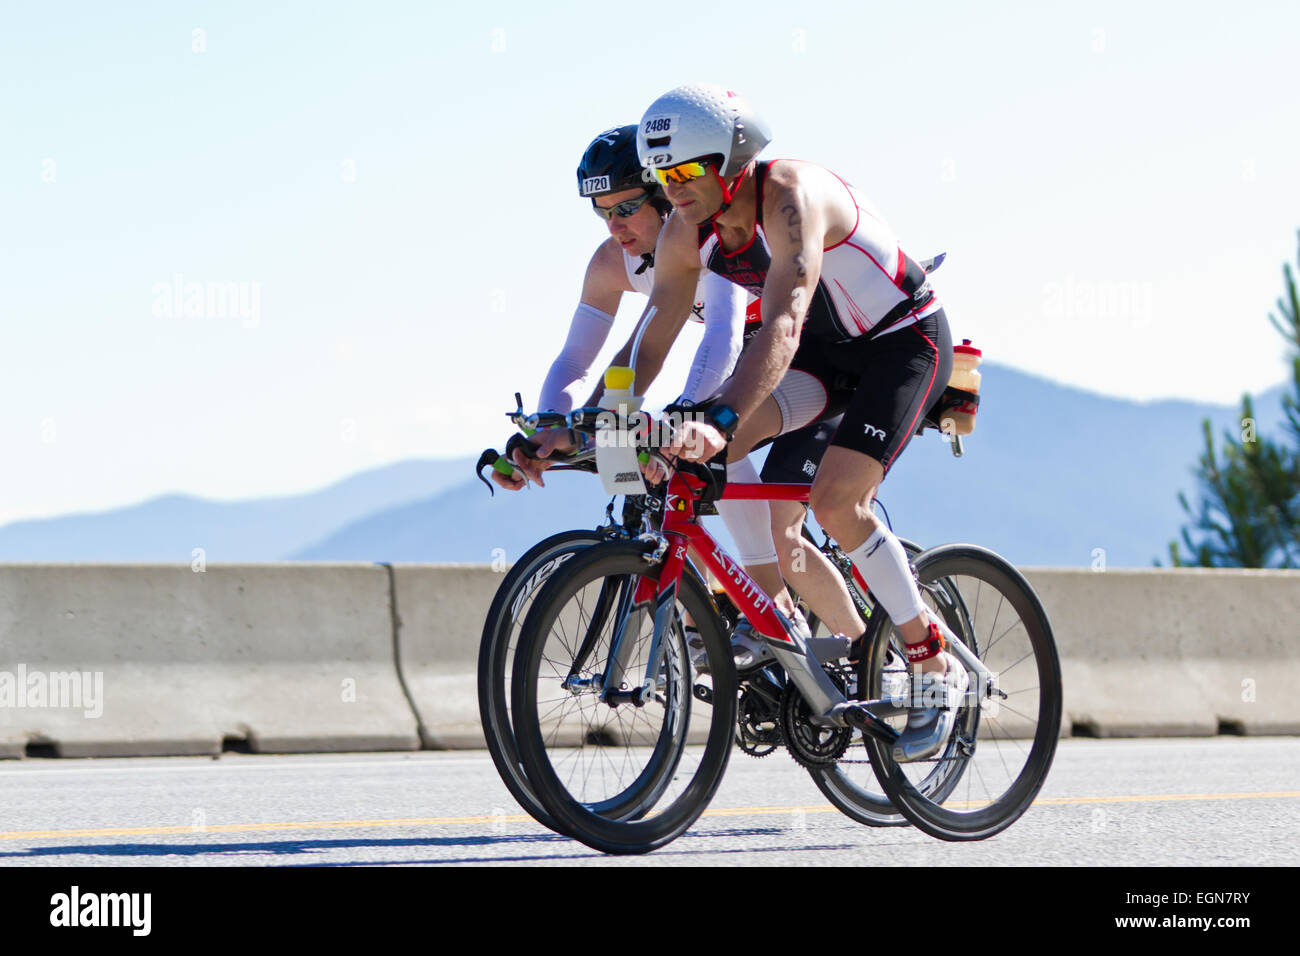 COEUR D ALENE, ID - JUNE 23: Triathlete on the bike part of